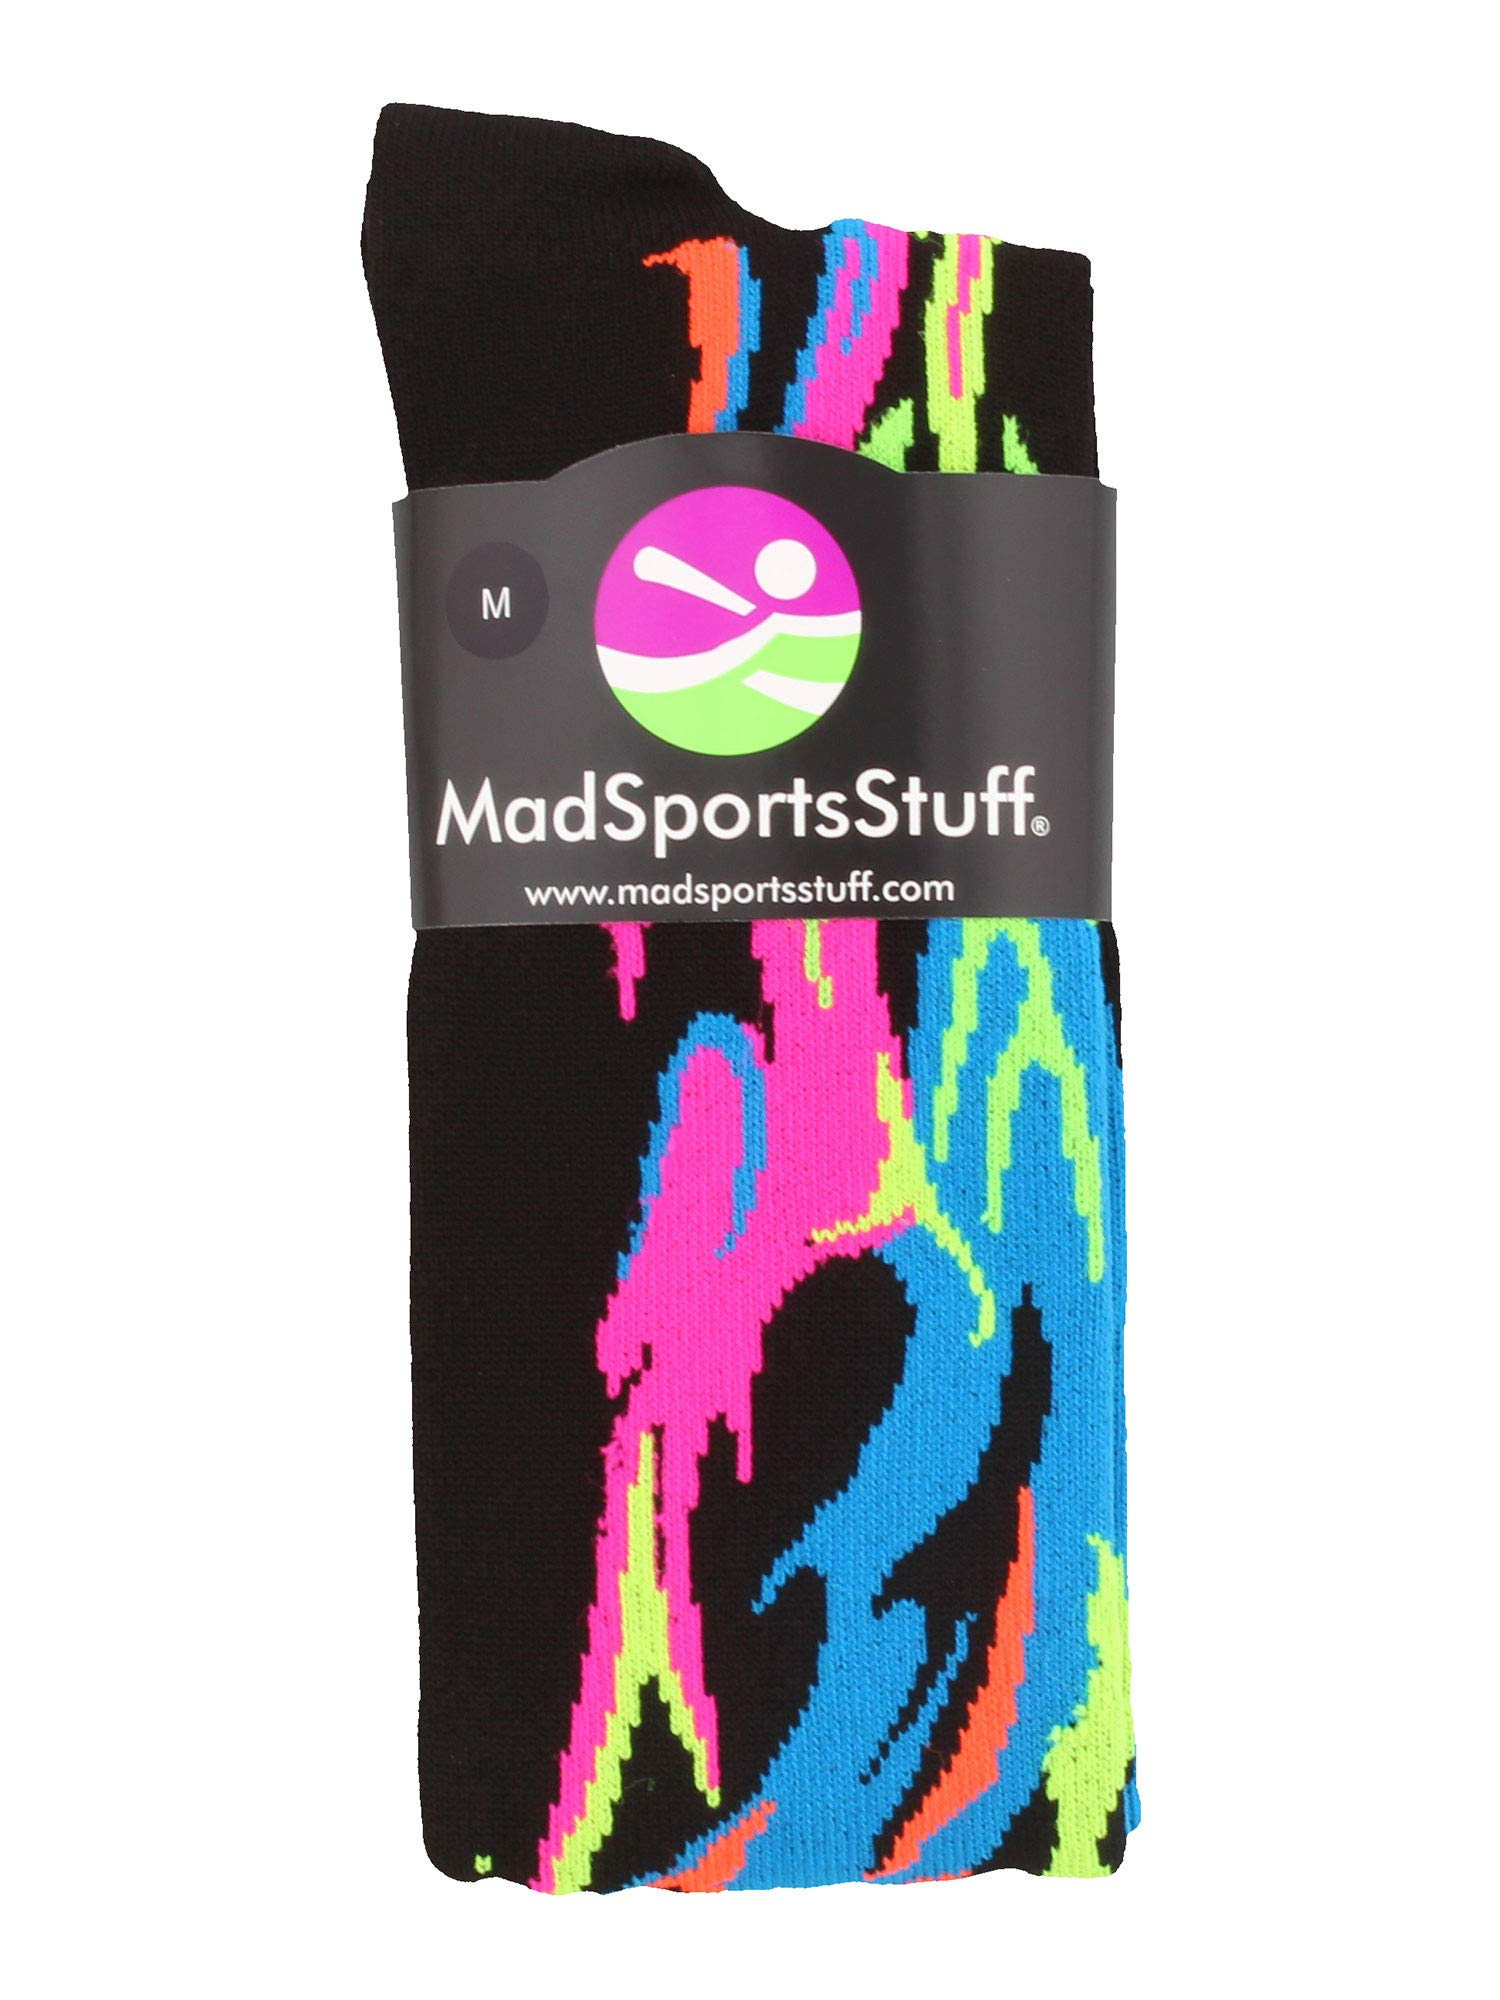 MadSportsStuff Flame Socks Athletic Over The Calf Socks (Multiple Colors) 4